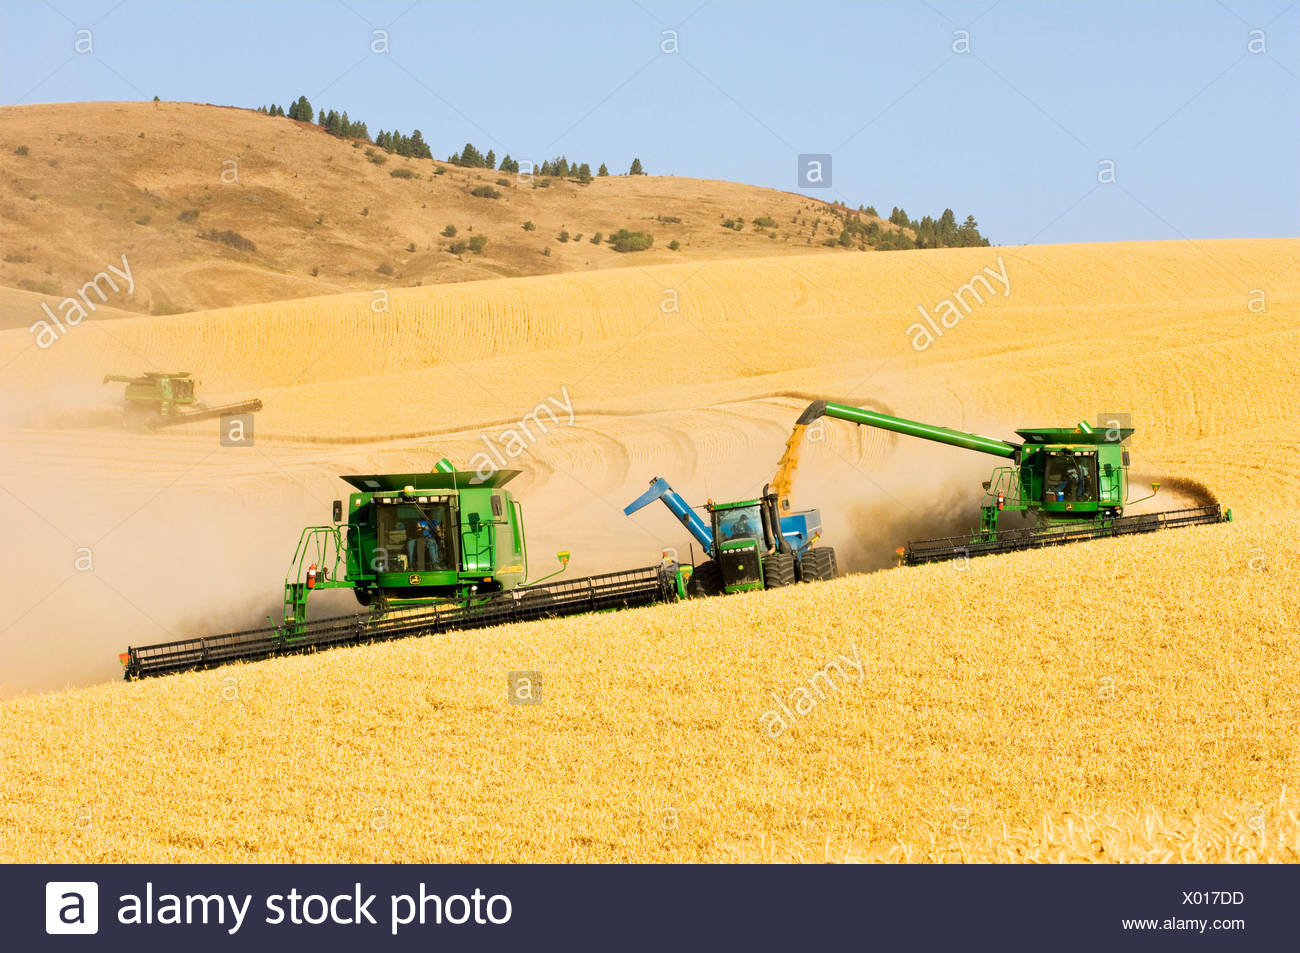 "Two combines harvest Soft White wheat on rolling hillside terrain while one combine unloads into a grain wagon ""on-the-go"" / USA - Stock Image"